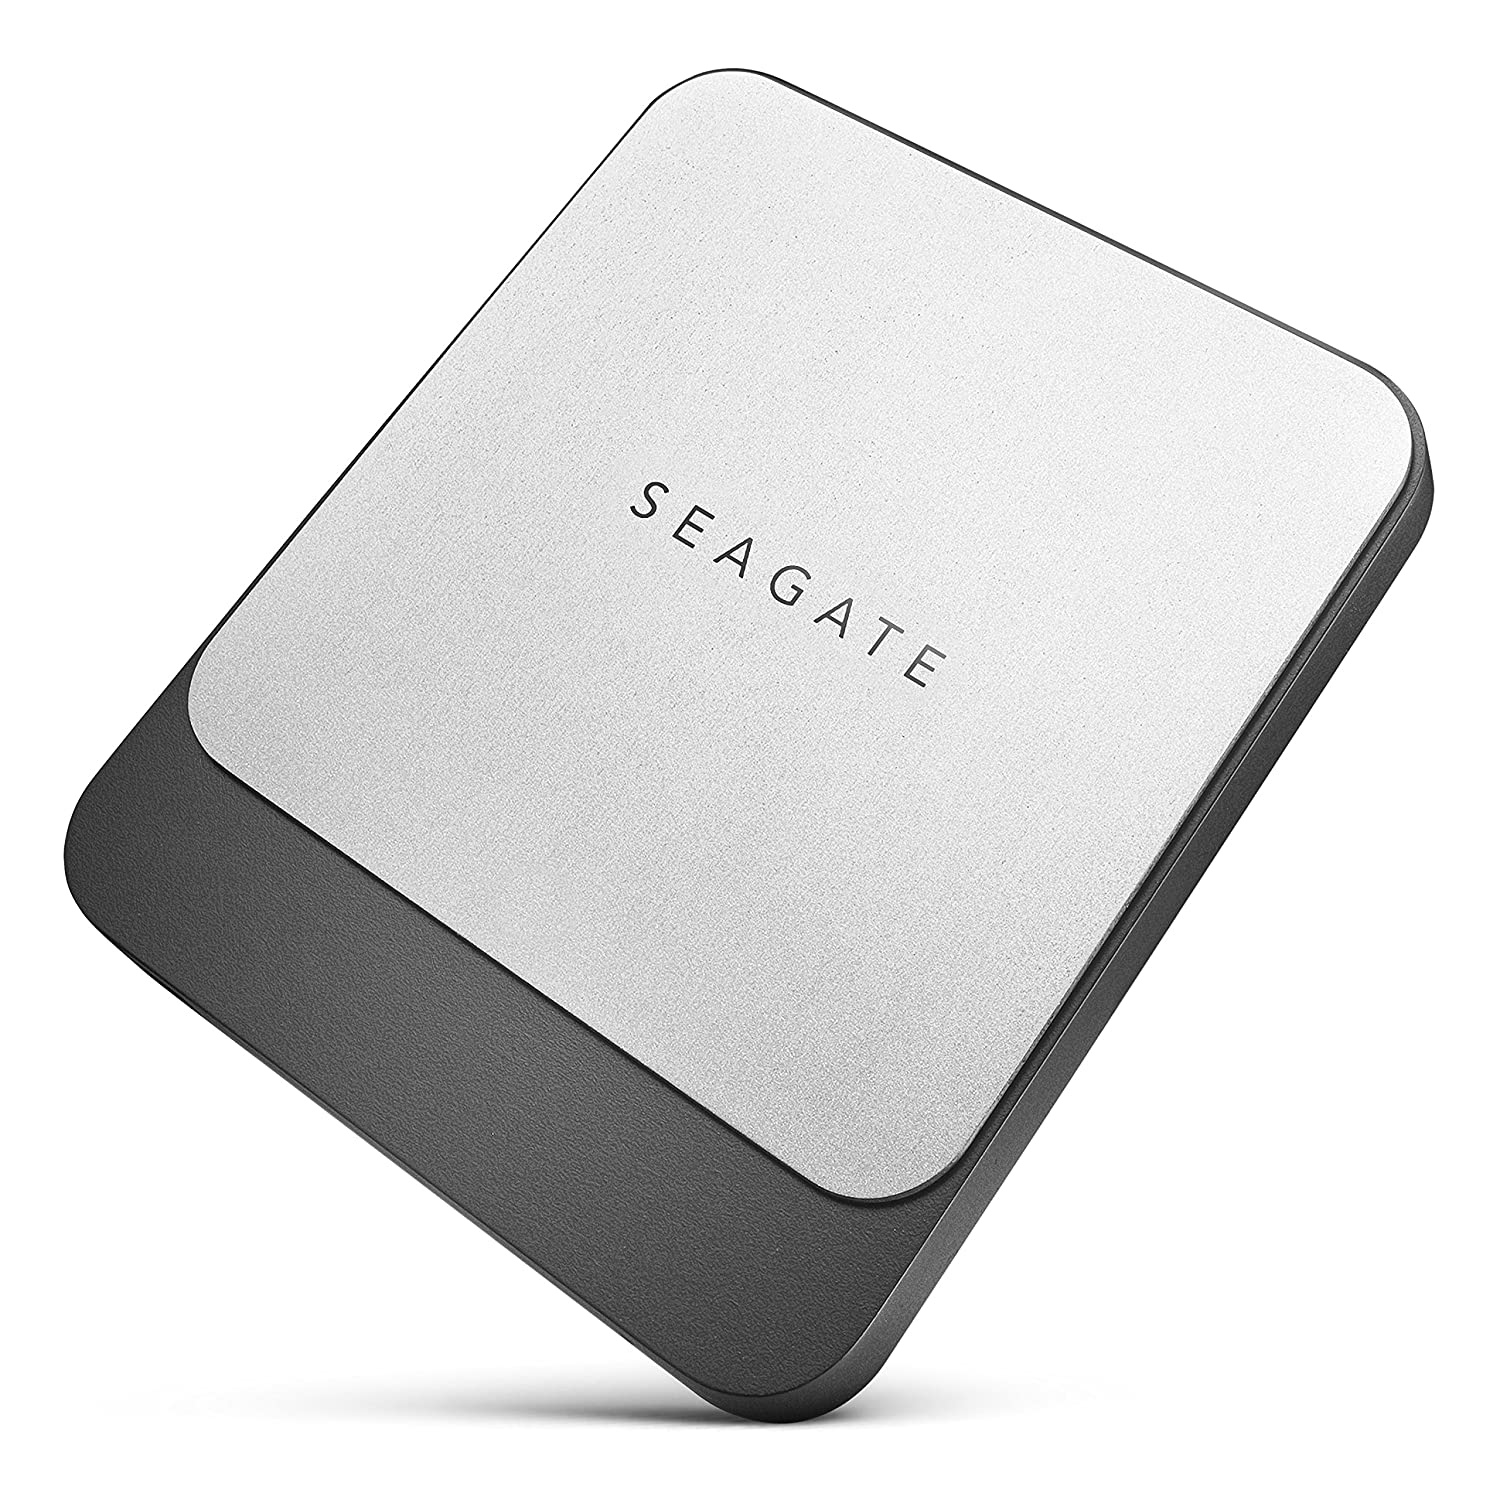 Seagate STCM500401 2,5 Zoll externe tragbare SSD Festplatte, 500 GB